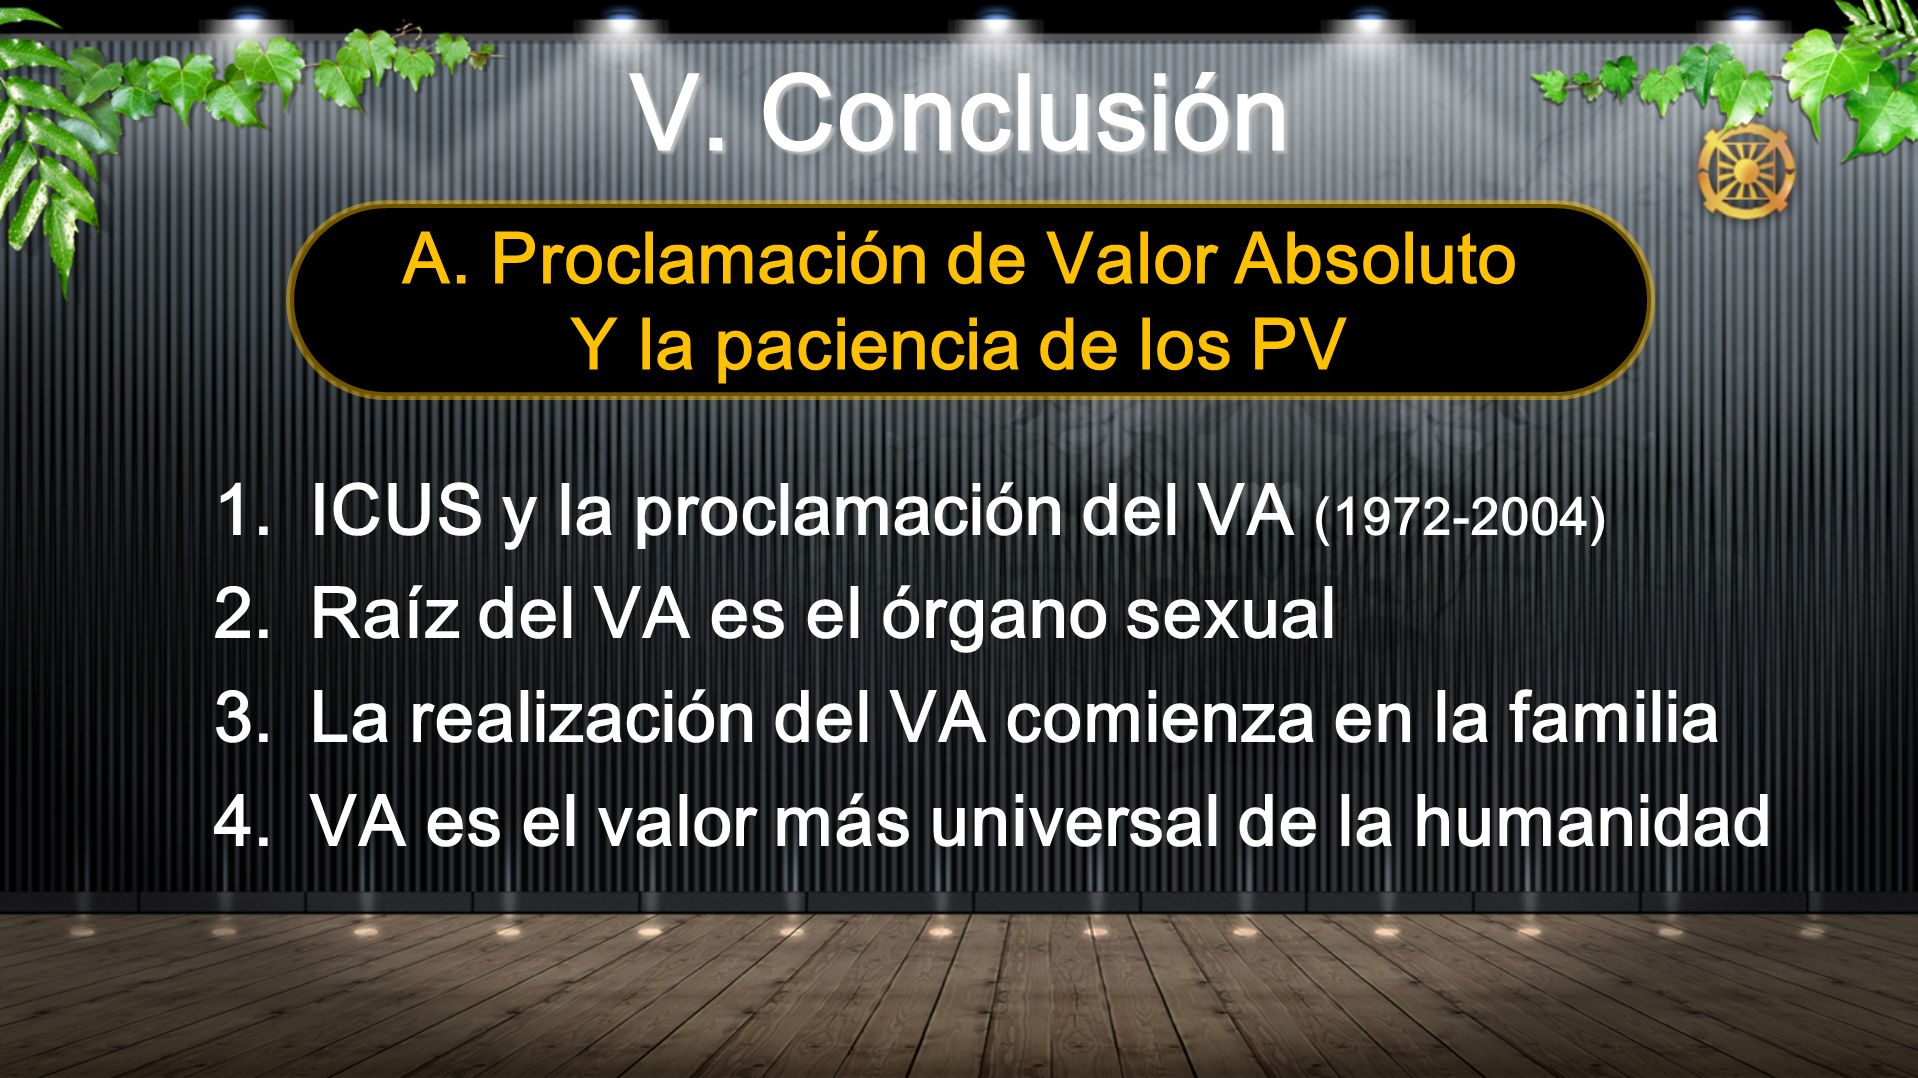 A. Proclamación de Valor Absoluto